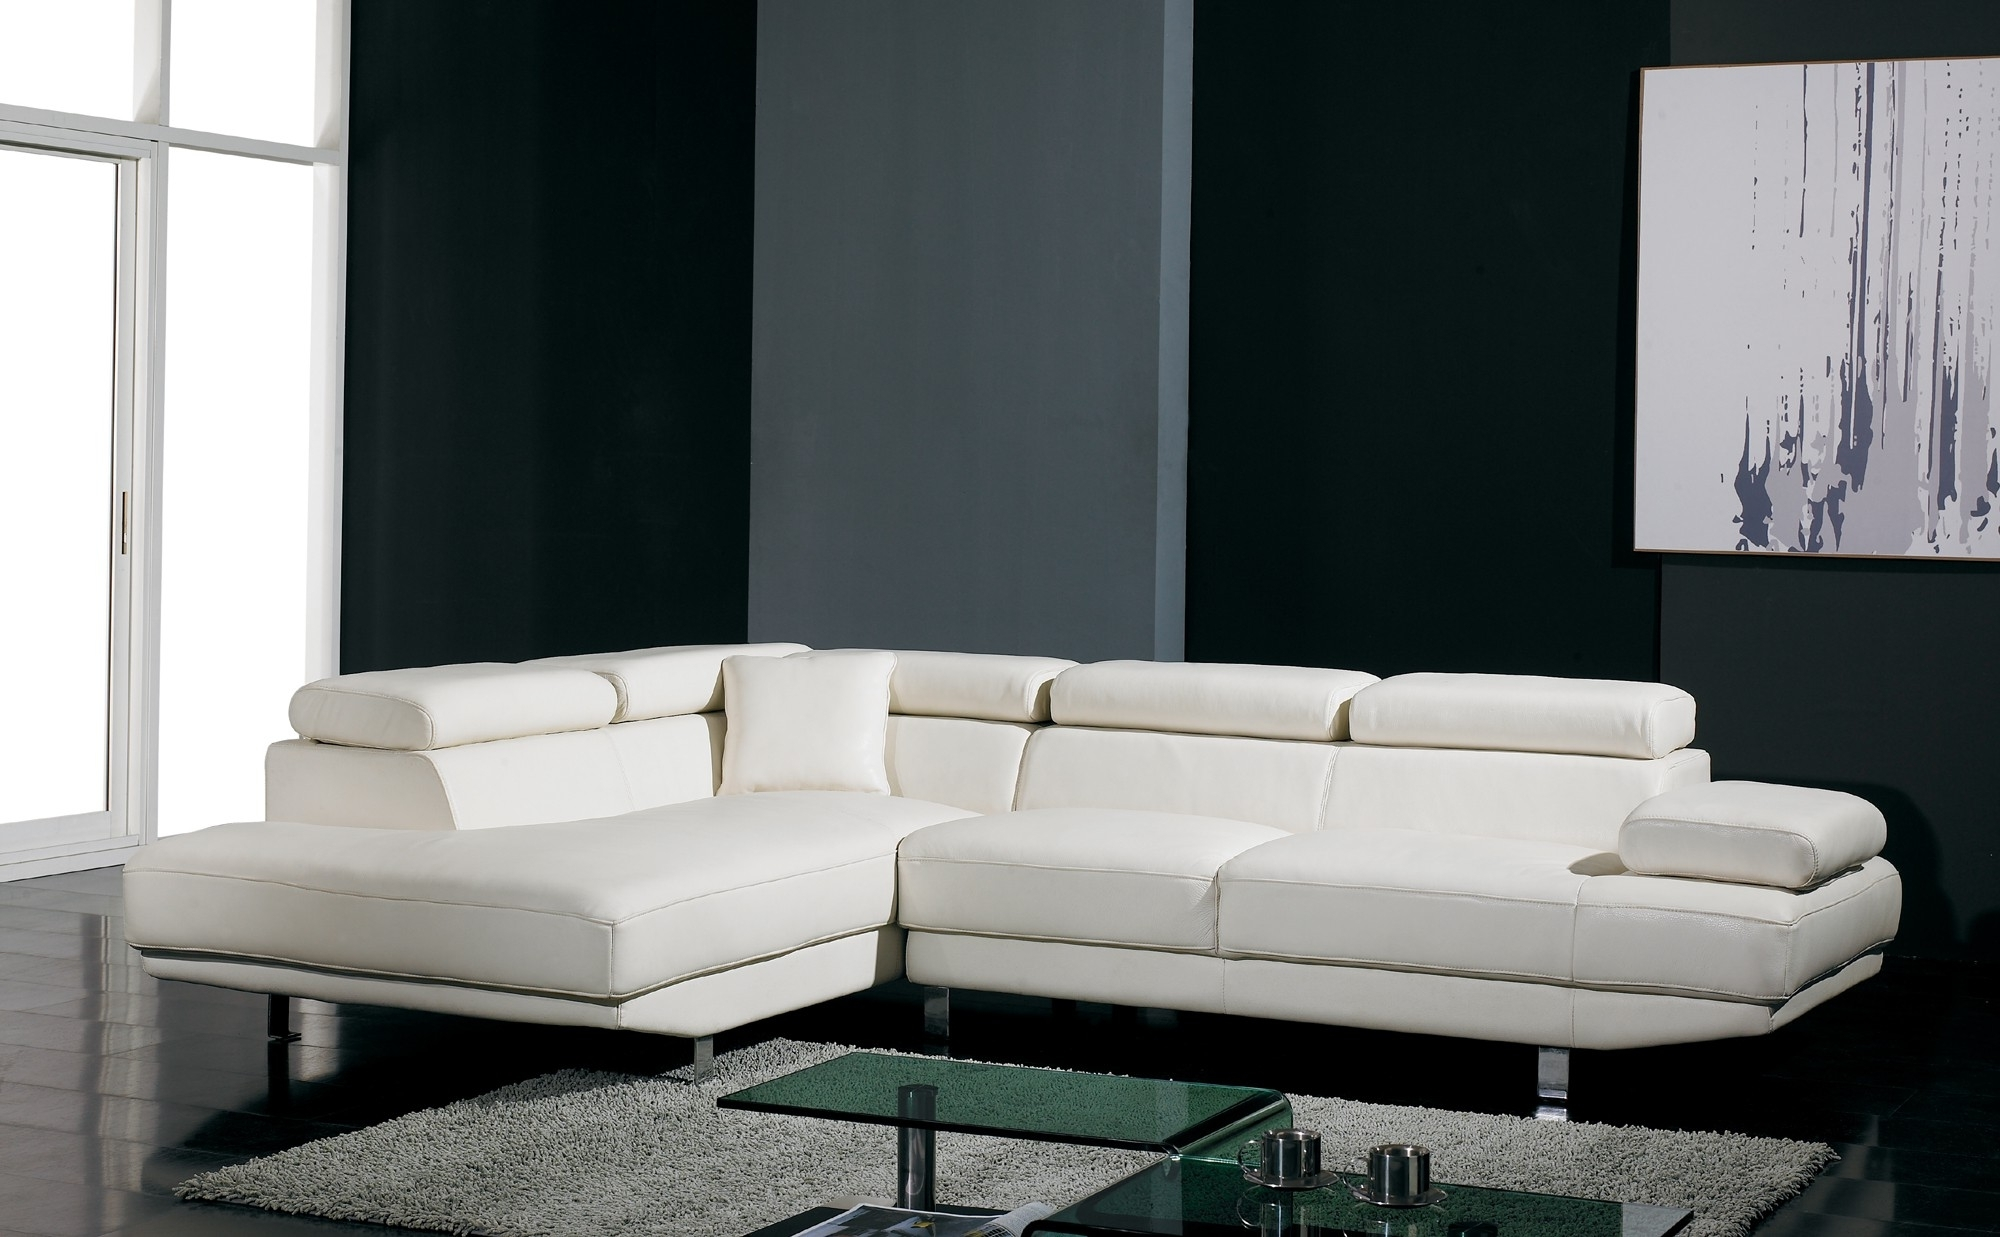 Contemporary Sectional Couch Modern Sectional Sofas For Small Regarding Well Liked Contemporary Sectional Sofas (View 4 of 20)